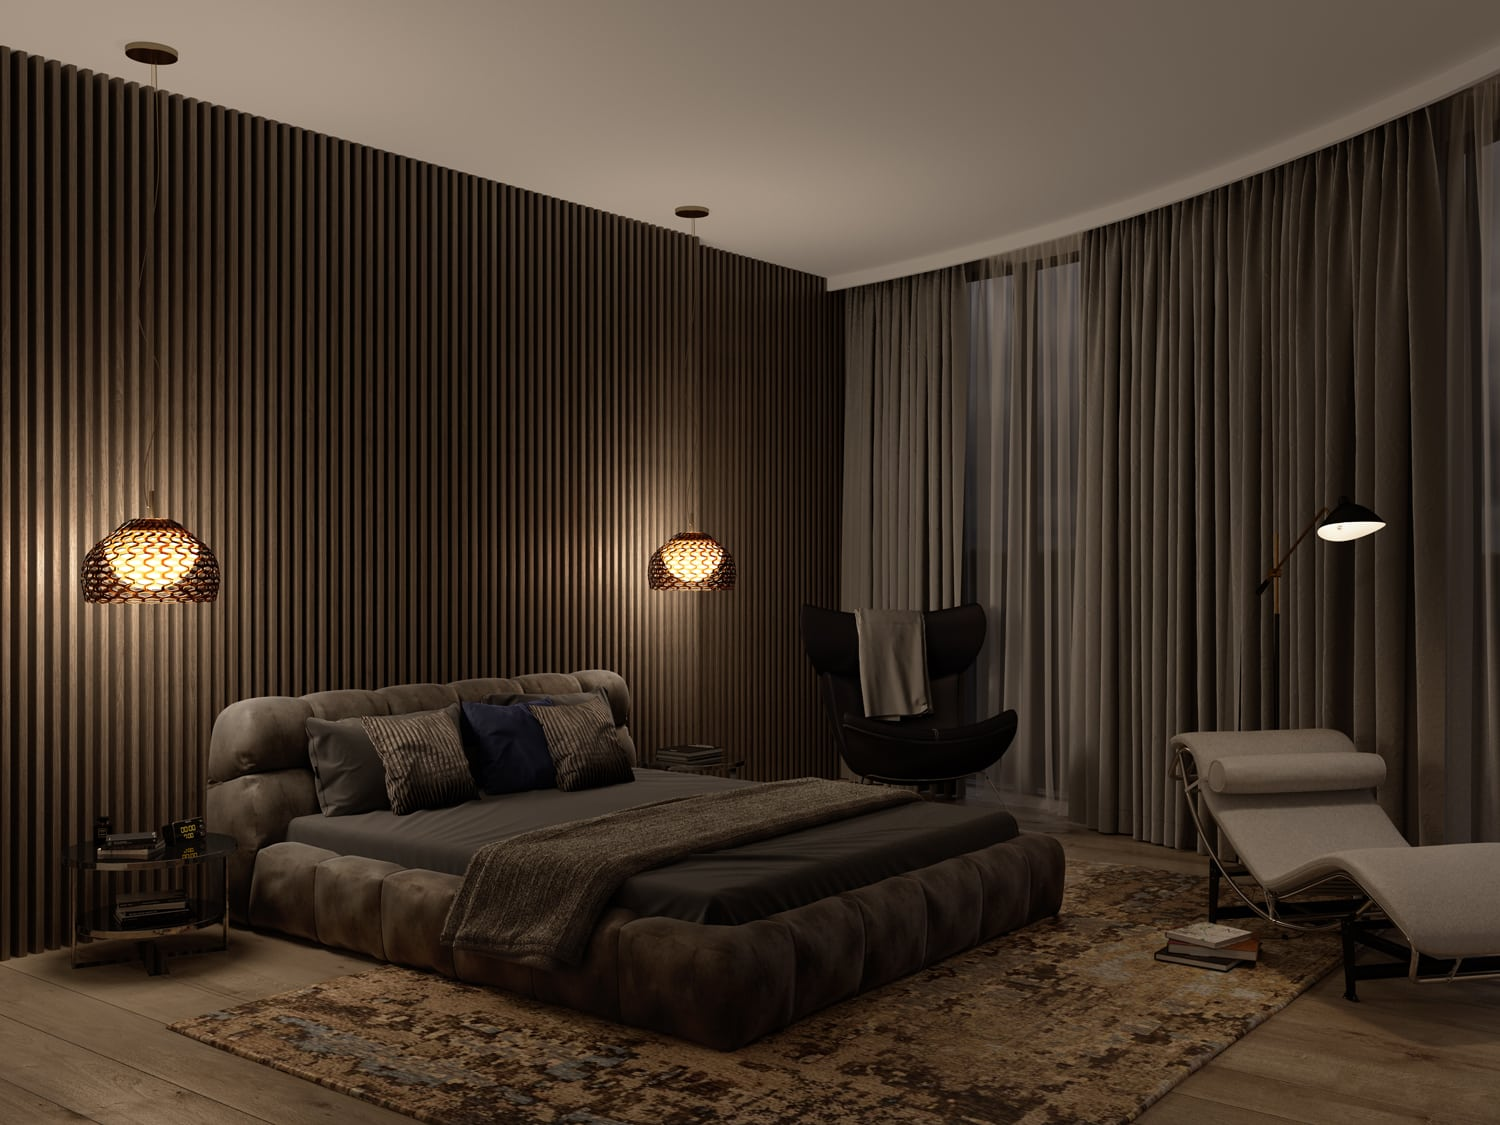 Impressive CGI bedroom image at night time, with closed curtains, plush made bed, and intricate lighting on the panelled wall. Part of the dynamic creative pack.